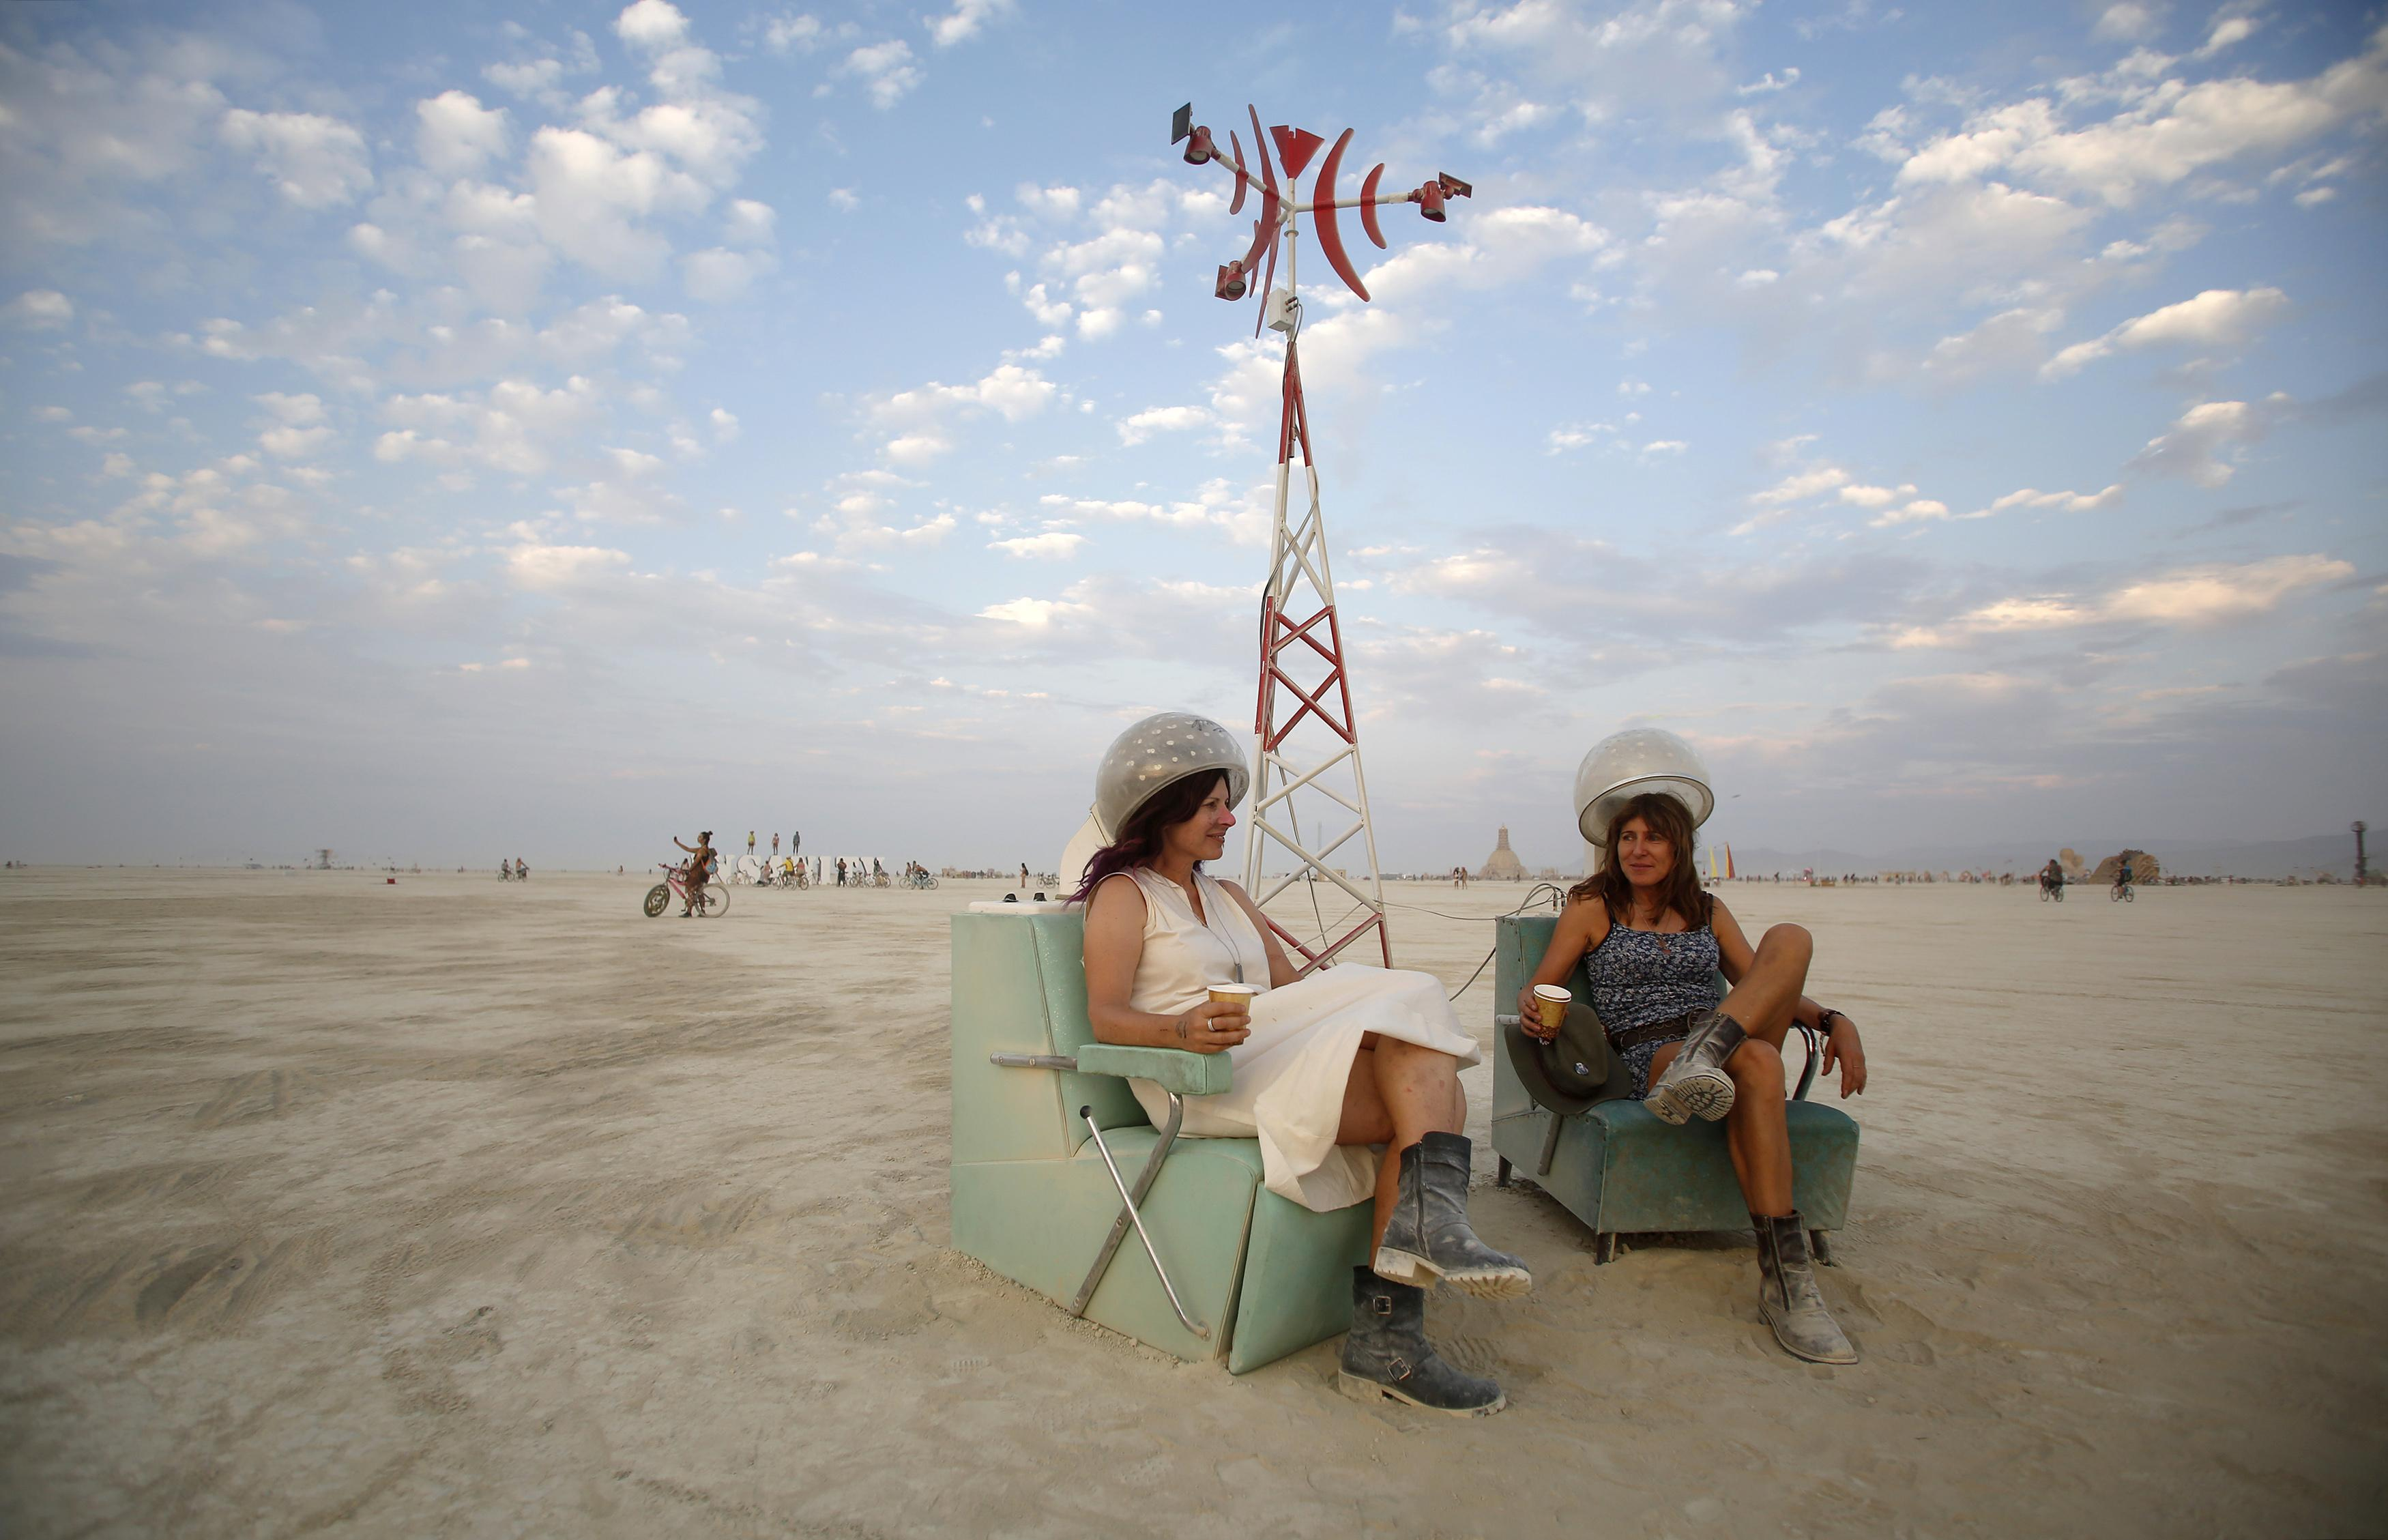 Burning Man 2016: Pictures, Facts, History, Photos Of